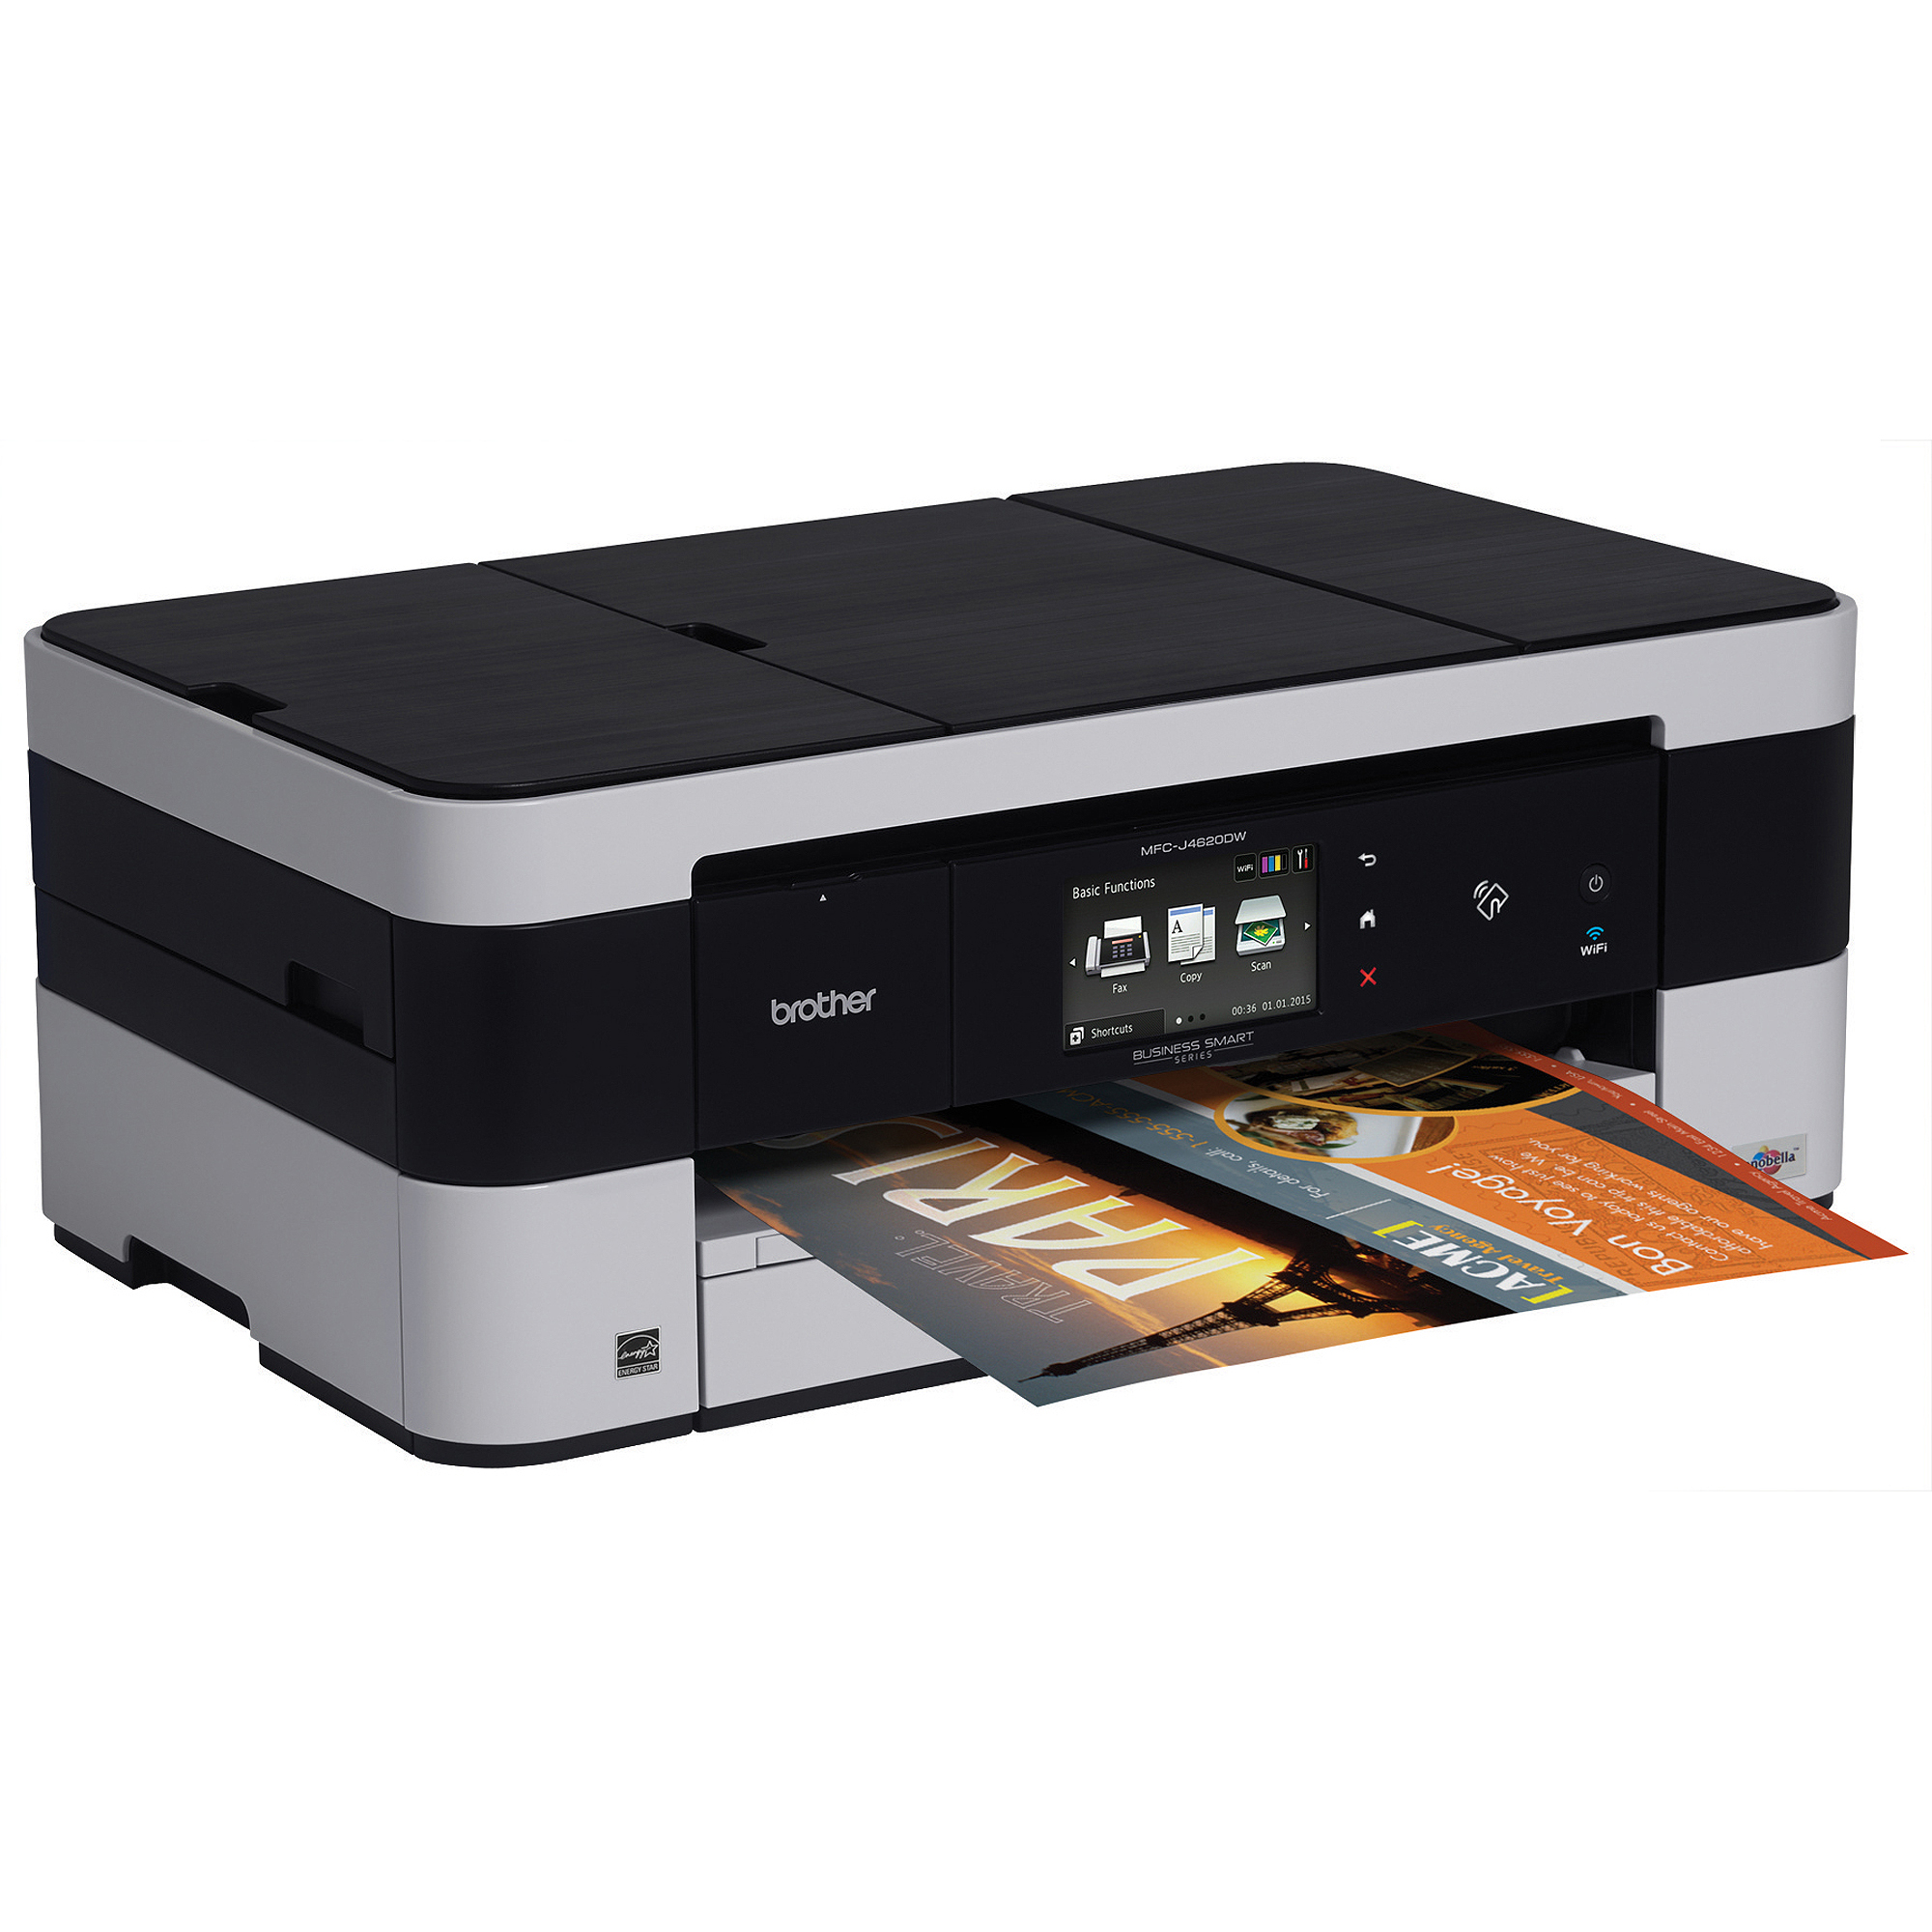 Brother Business Smart Plus MFCJ5720DW AllinOne Inkjet Printer